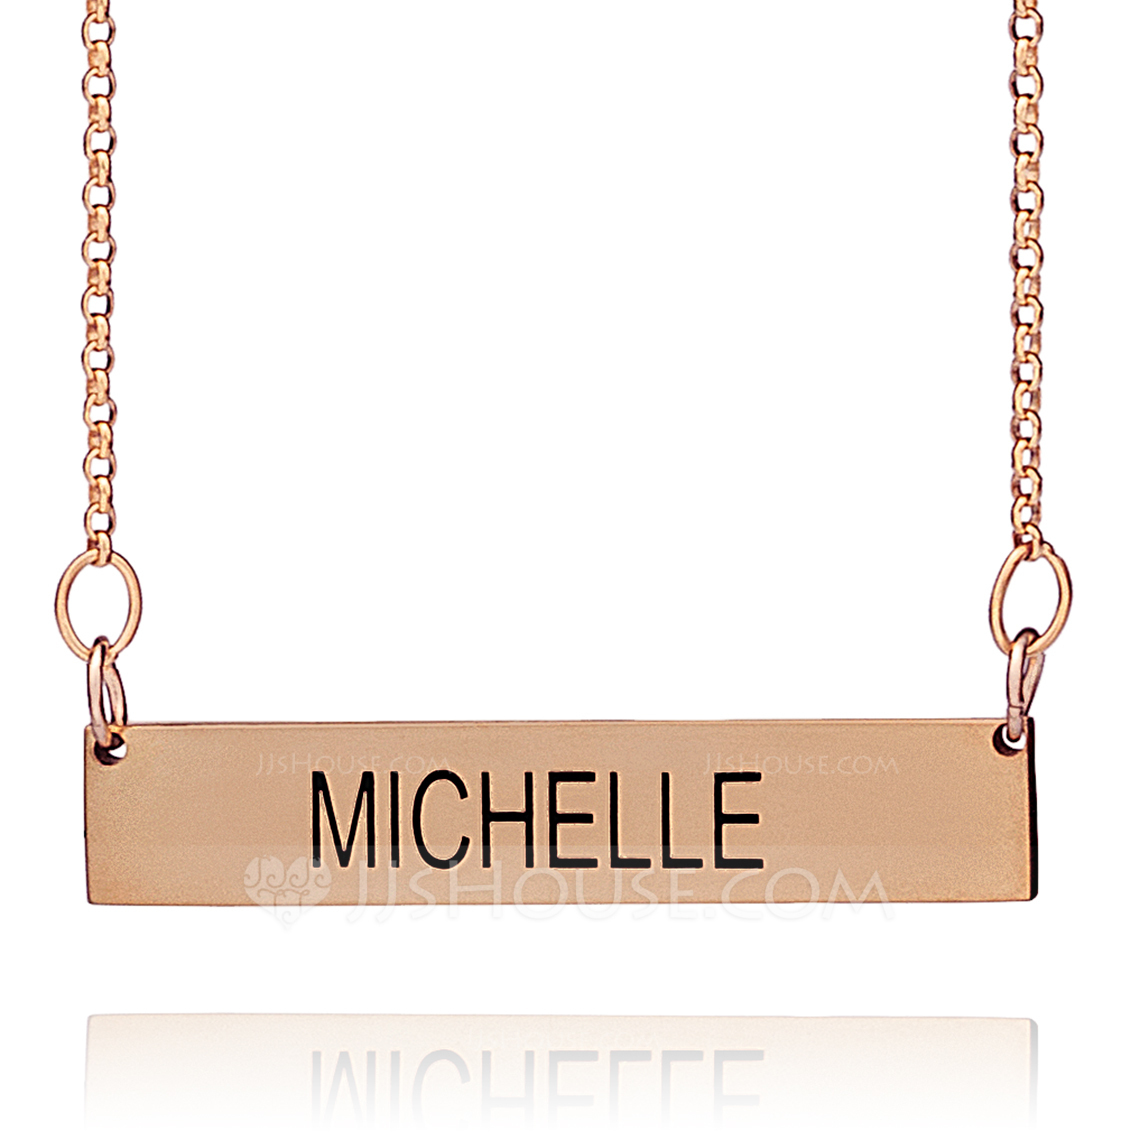 Custom 18k Rose Gold Plated Silver Bar Engraving/Engraved Name Necklace Nameplate - Christmas Gifts